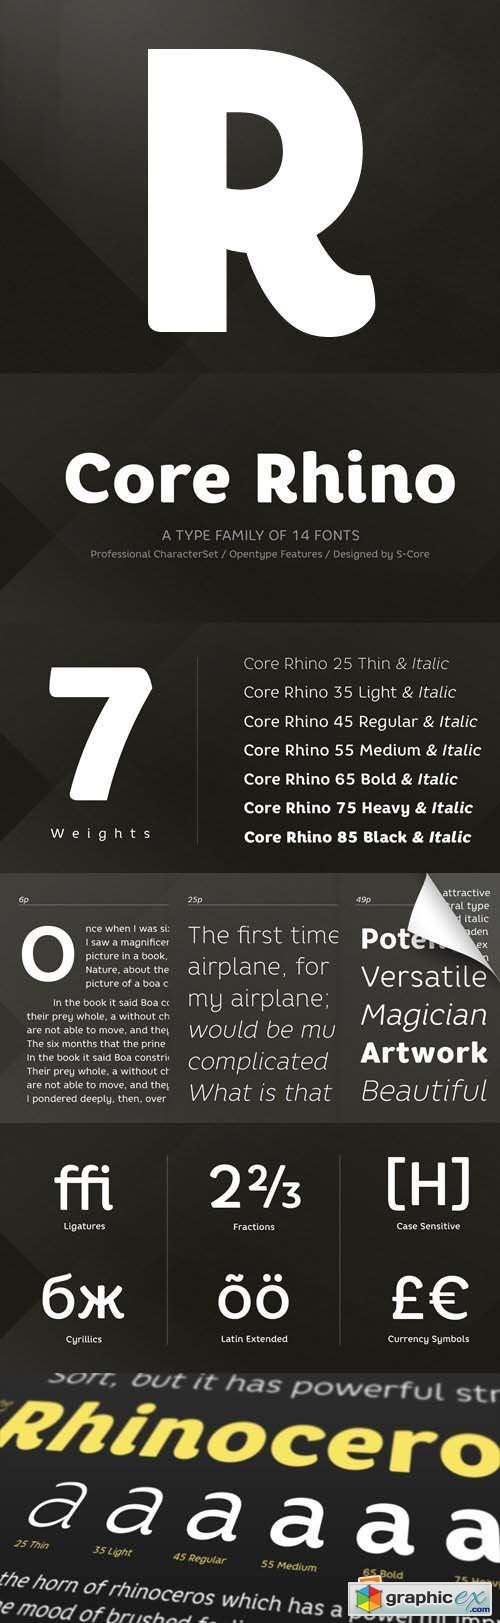 Core Rhino Font Family - 14 Fonts for $203